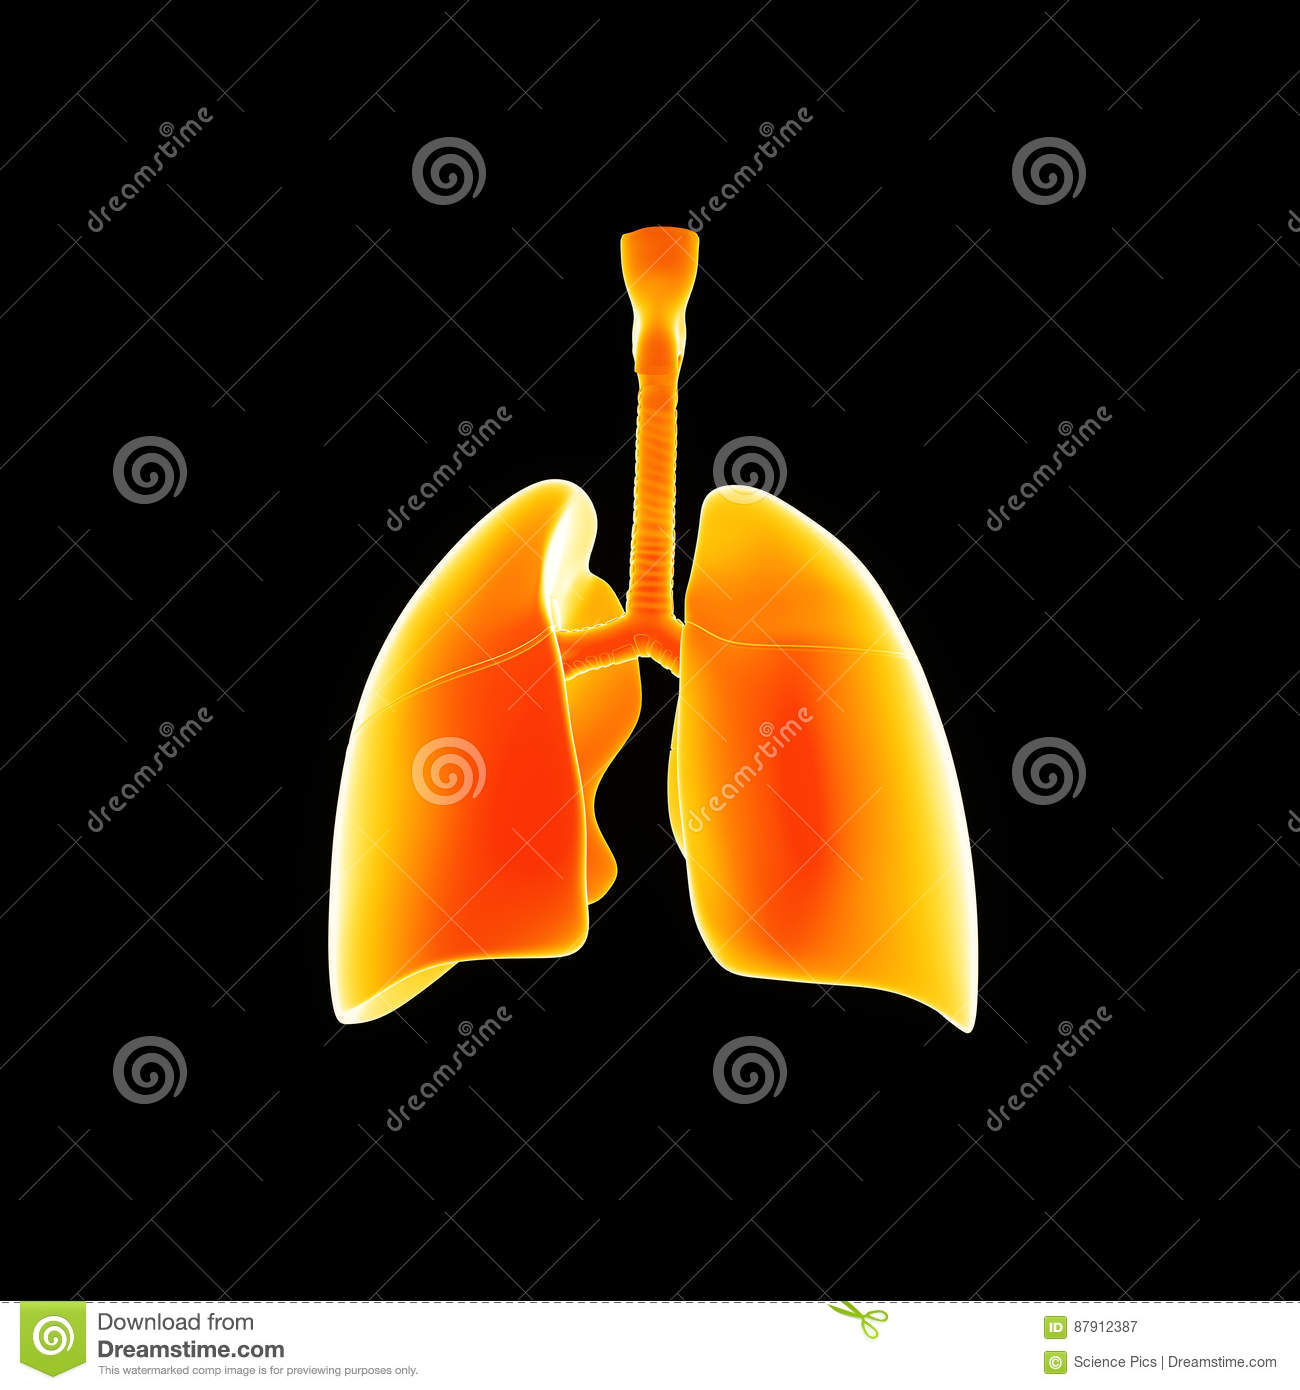 Human Lungs posterior view